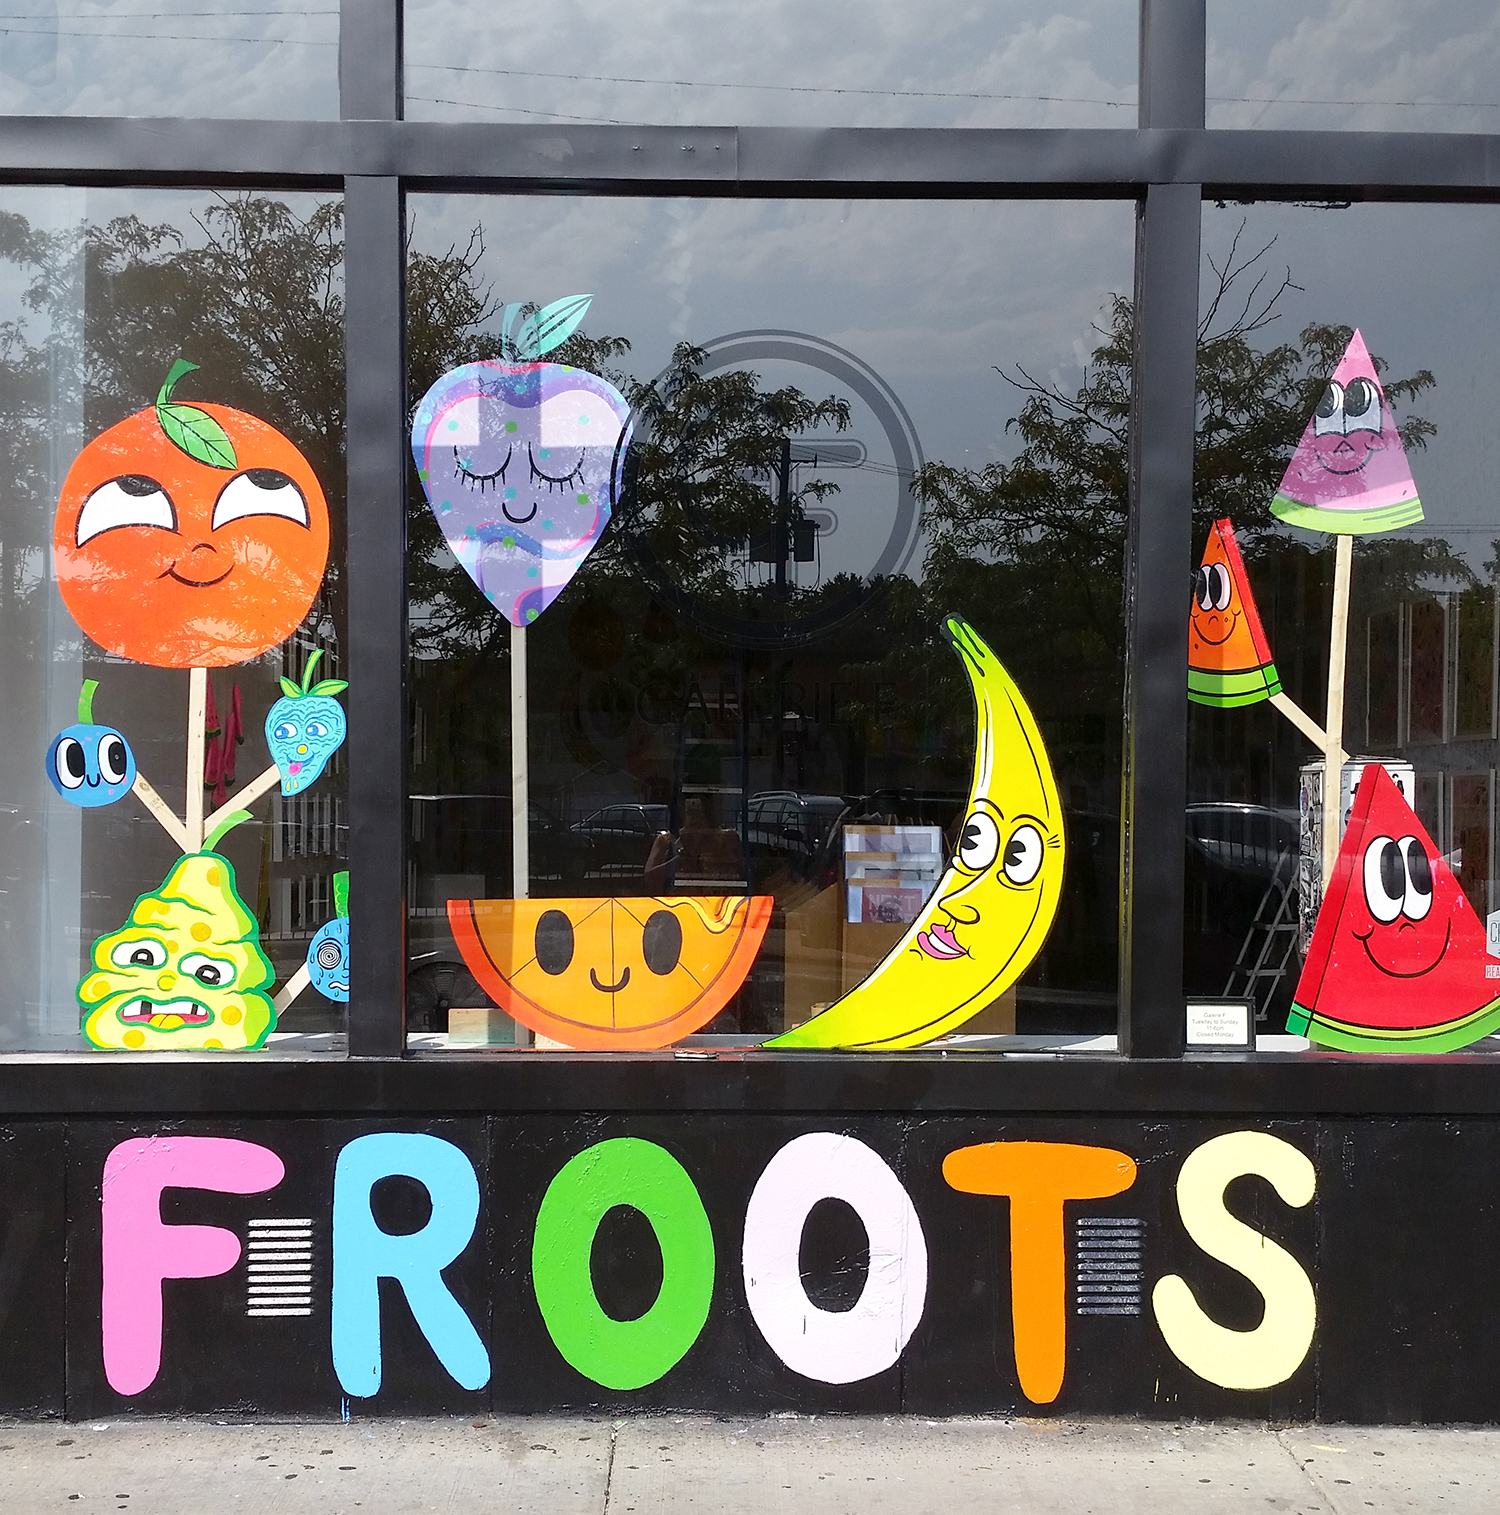 """Chris & Rob made these big wooden cutouts for the show, and the gallery let Rob paint """"Froots"""" on the exterior. I love how it came out, and people couldn't resist walking into the gallery even as we were installing the show."""